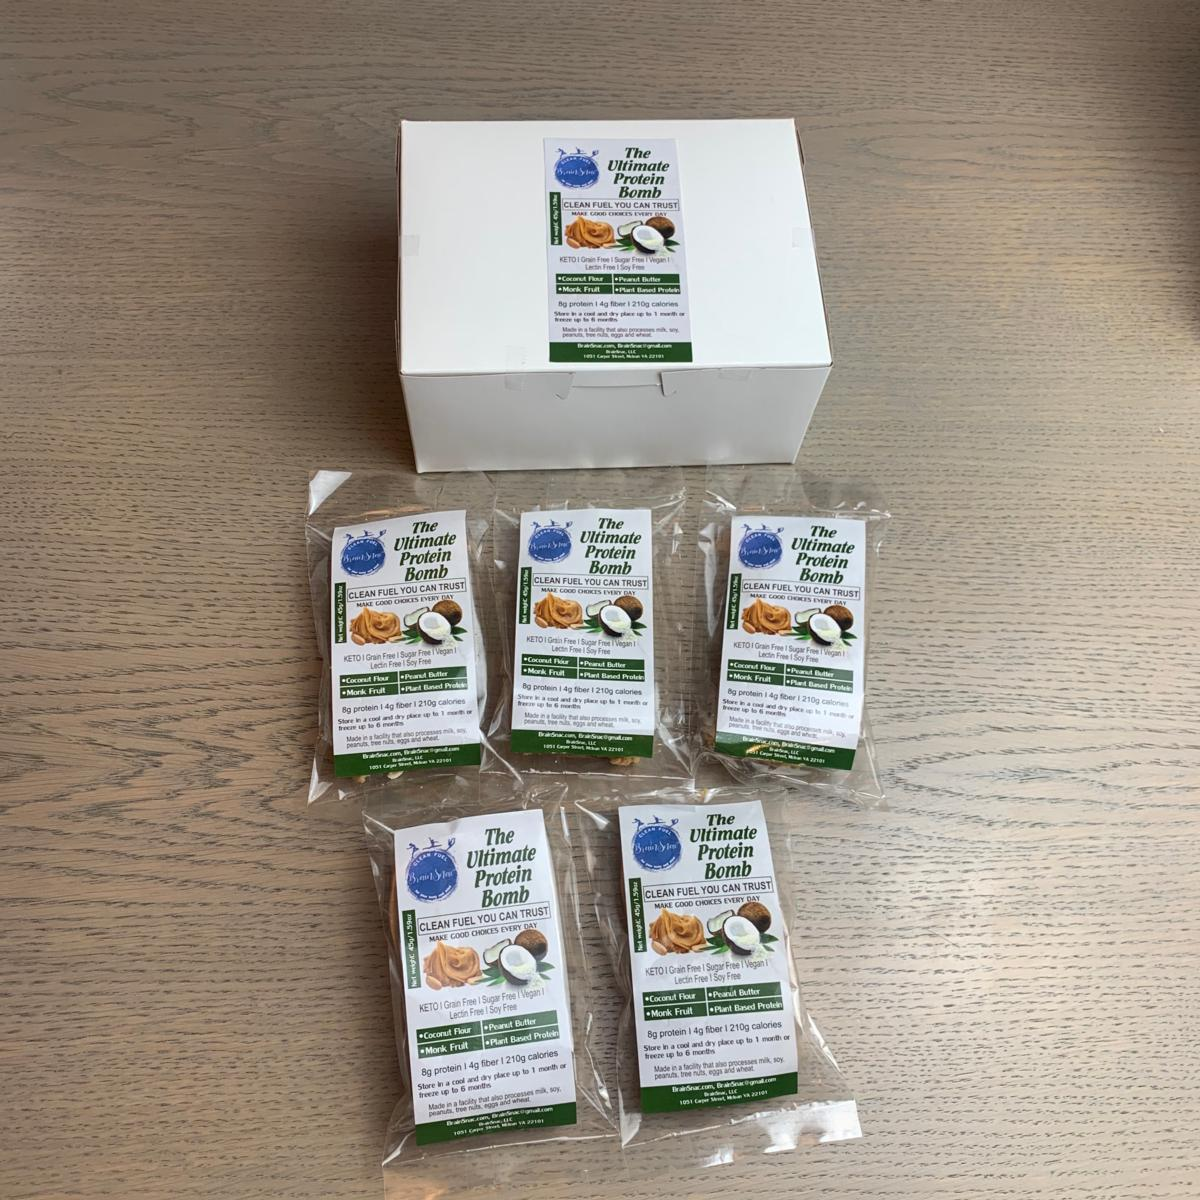 Keto Line (K1): The Ultimate Protein Bomb - Vegan KETO Grain Free Sugar Free - Grab and Go Box